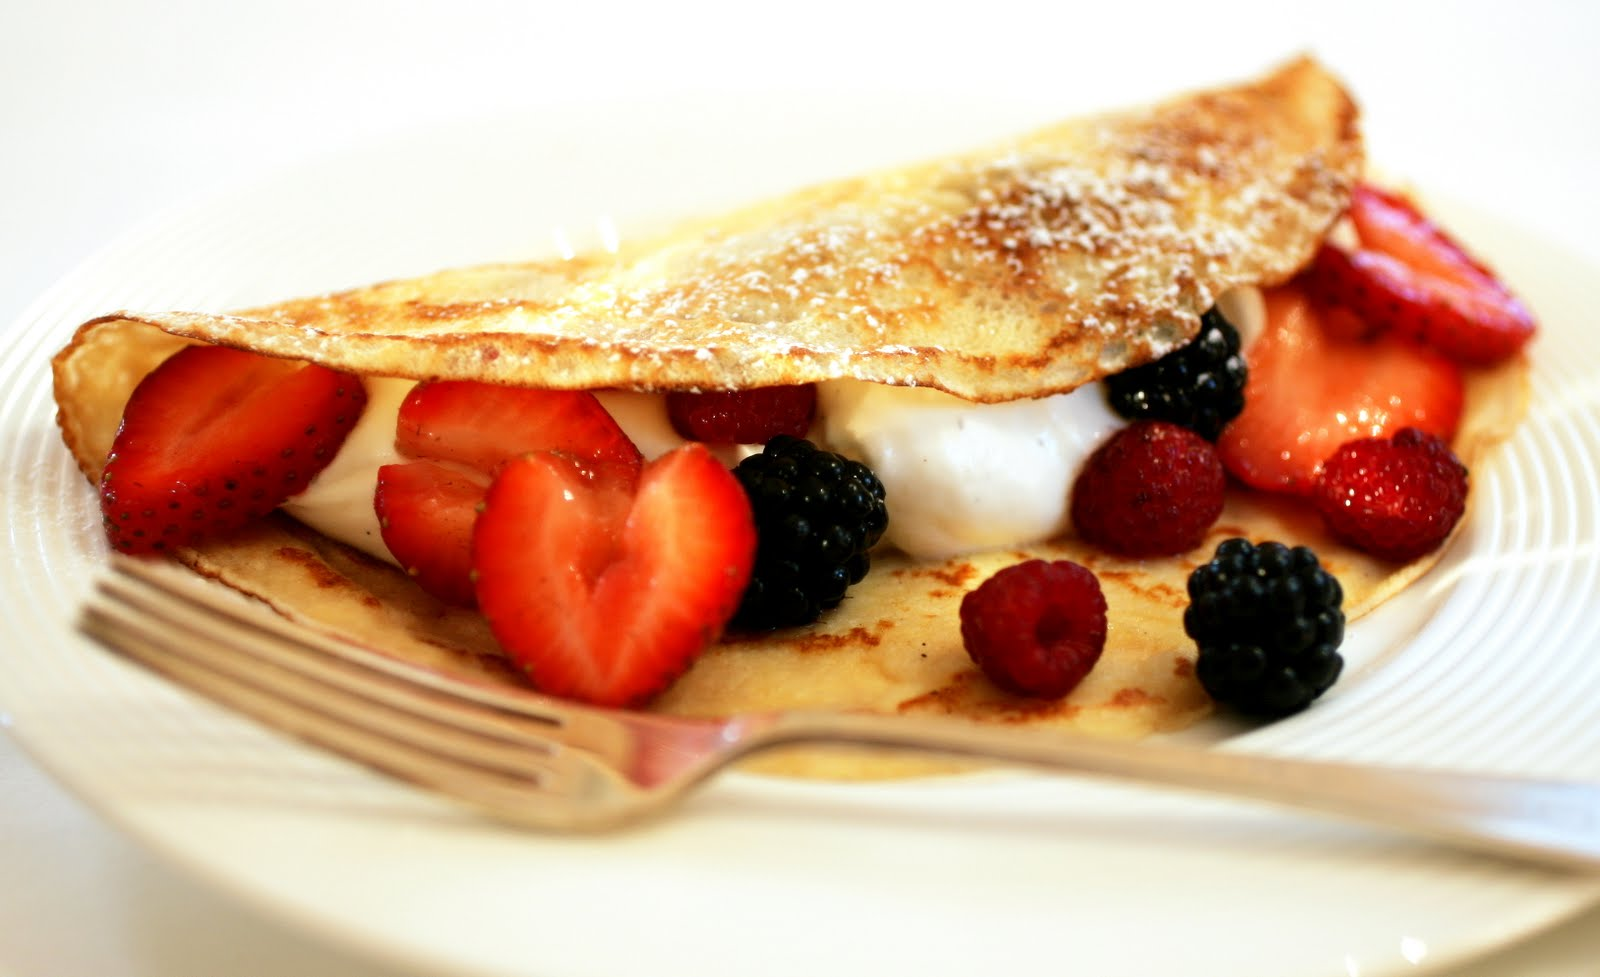 Tish Boyle Sweet Dreams: Cheesecake Mousse Crepes with Mixed Berries